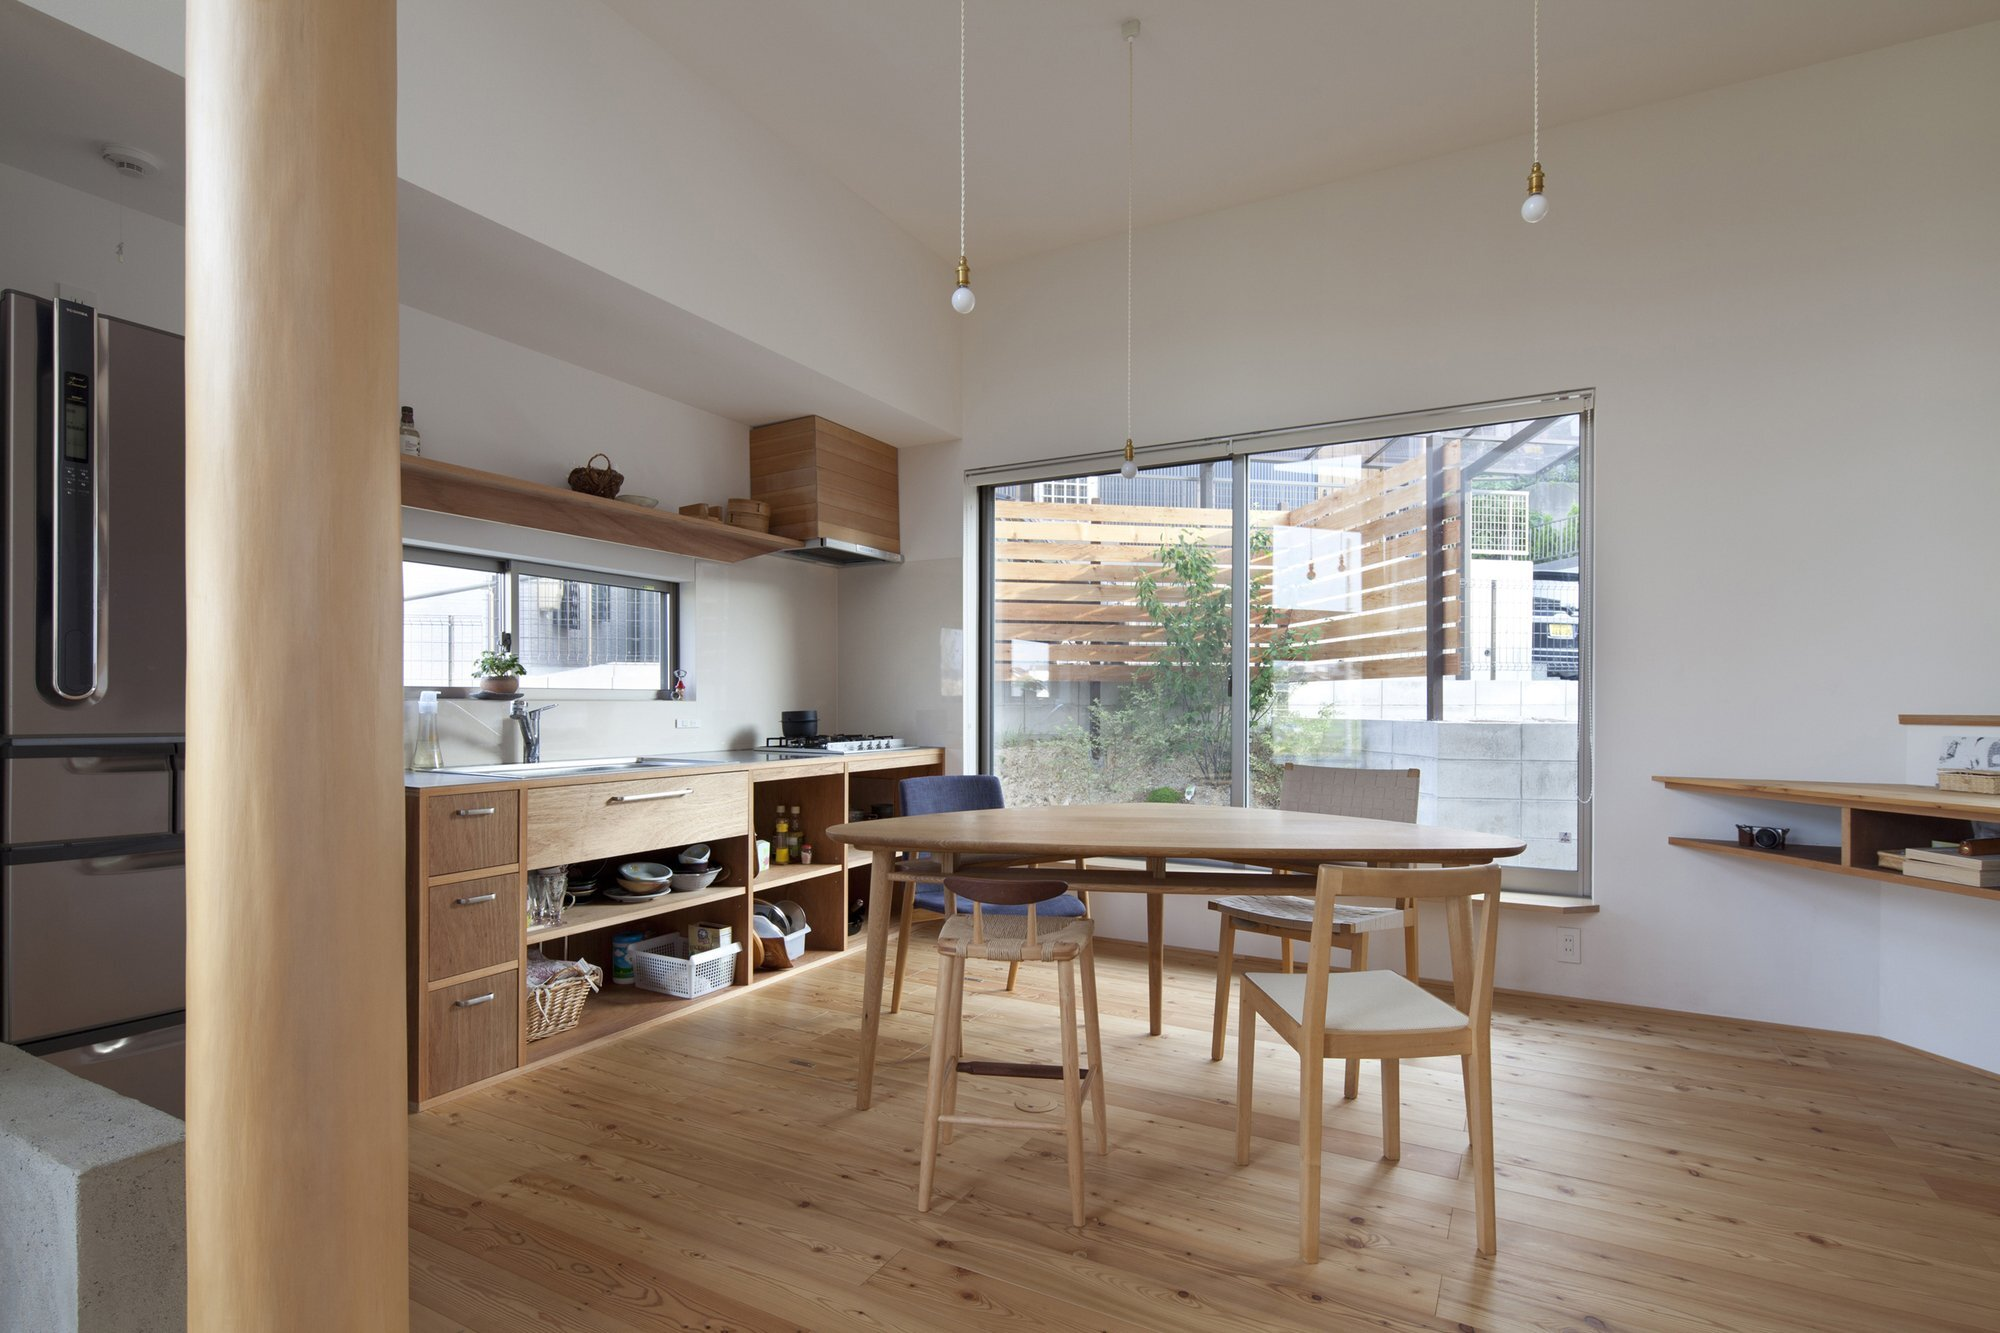 Image gallery japanese studio houses for Apartment japan design